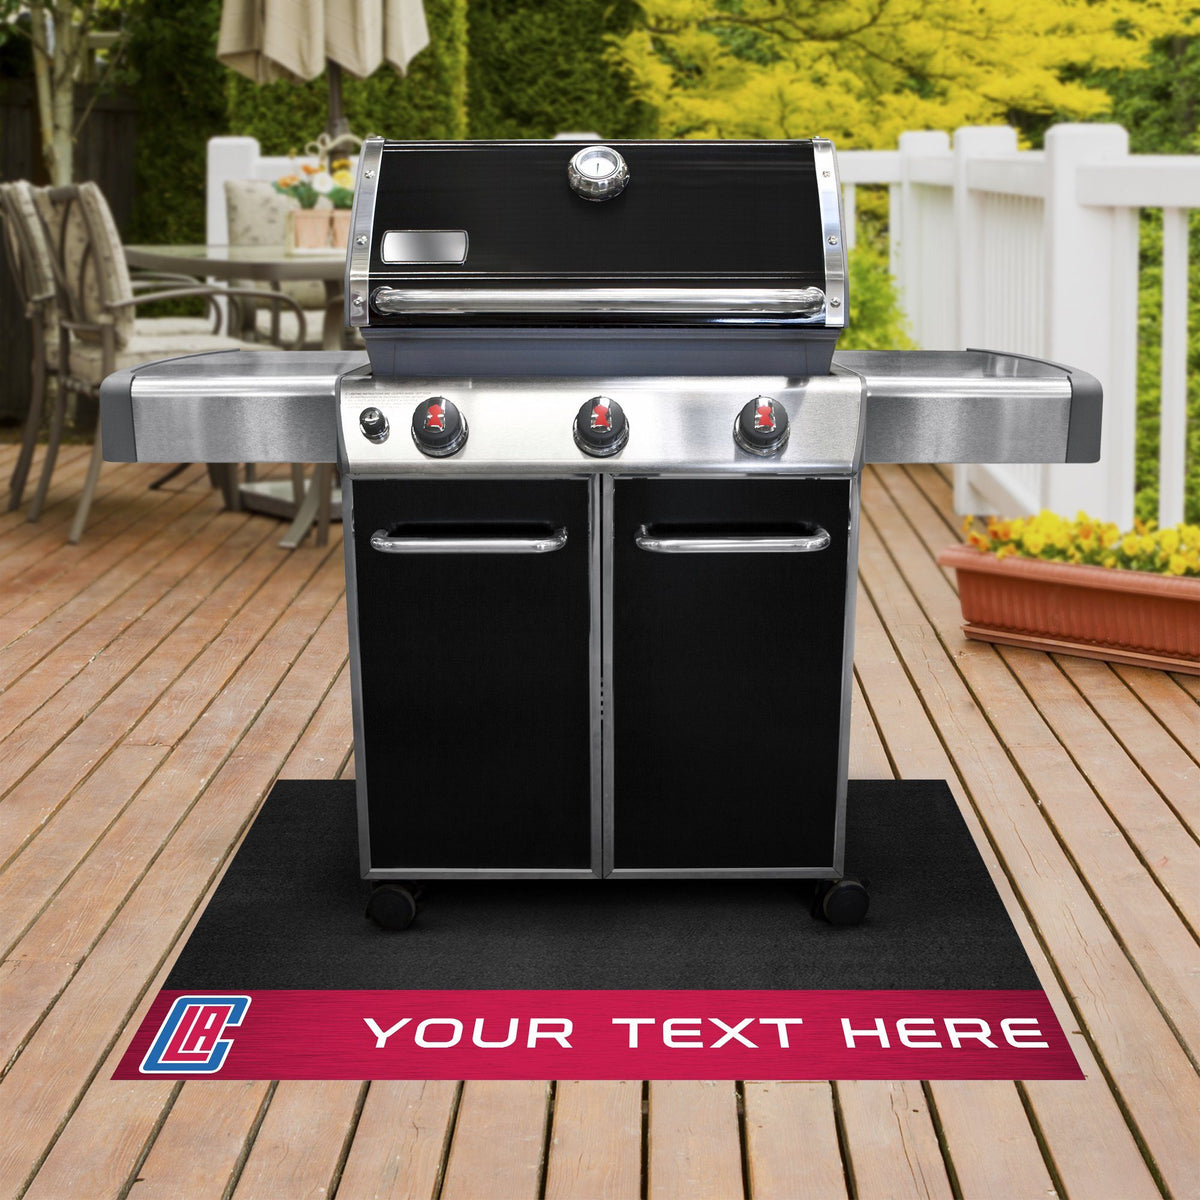 NBA Personalized Grill Mat Personalized Grill Mat Fan Mats Los Angeles Clippers